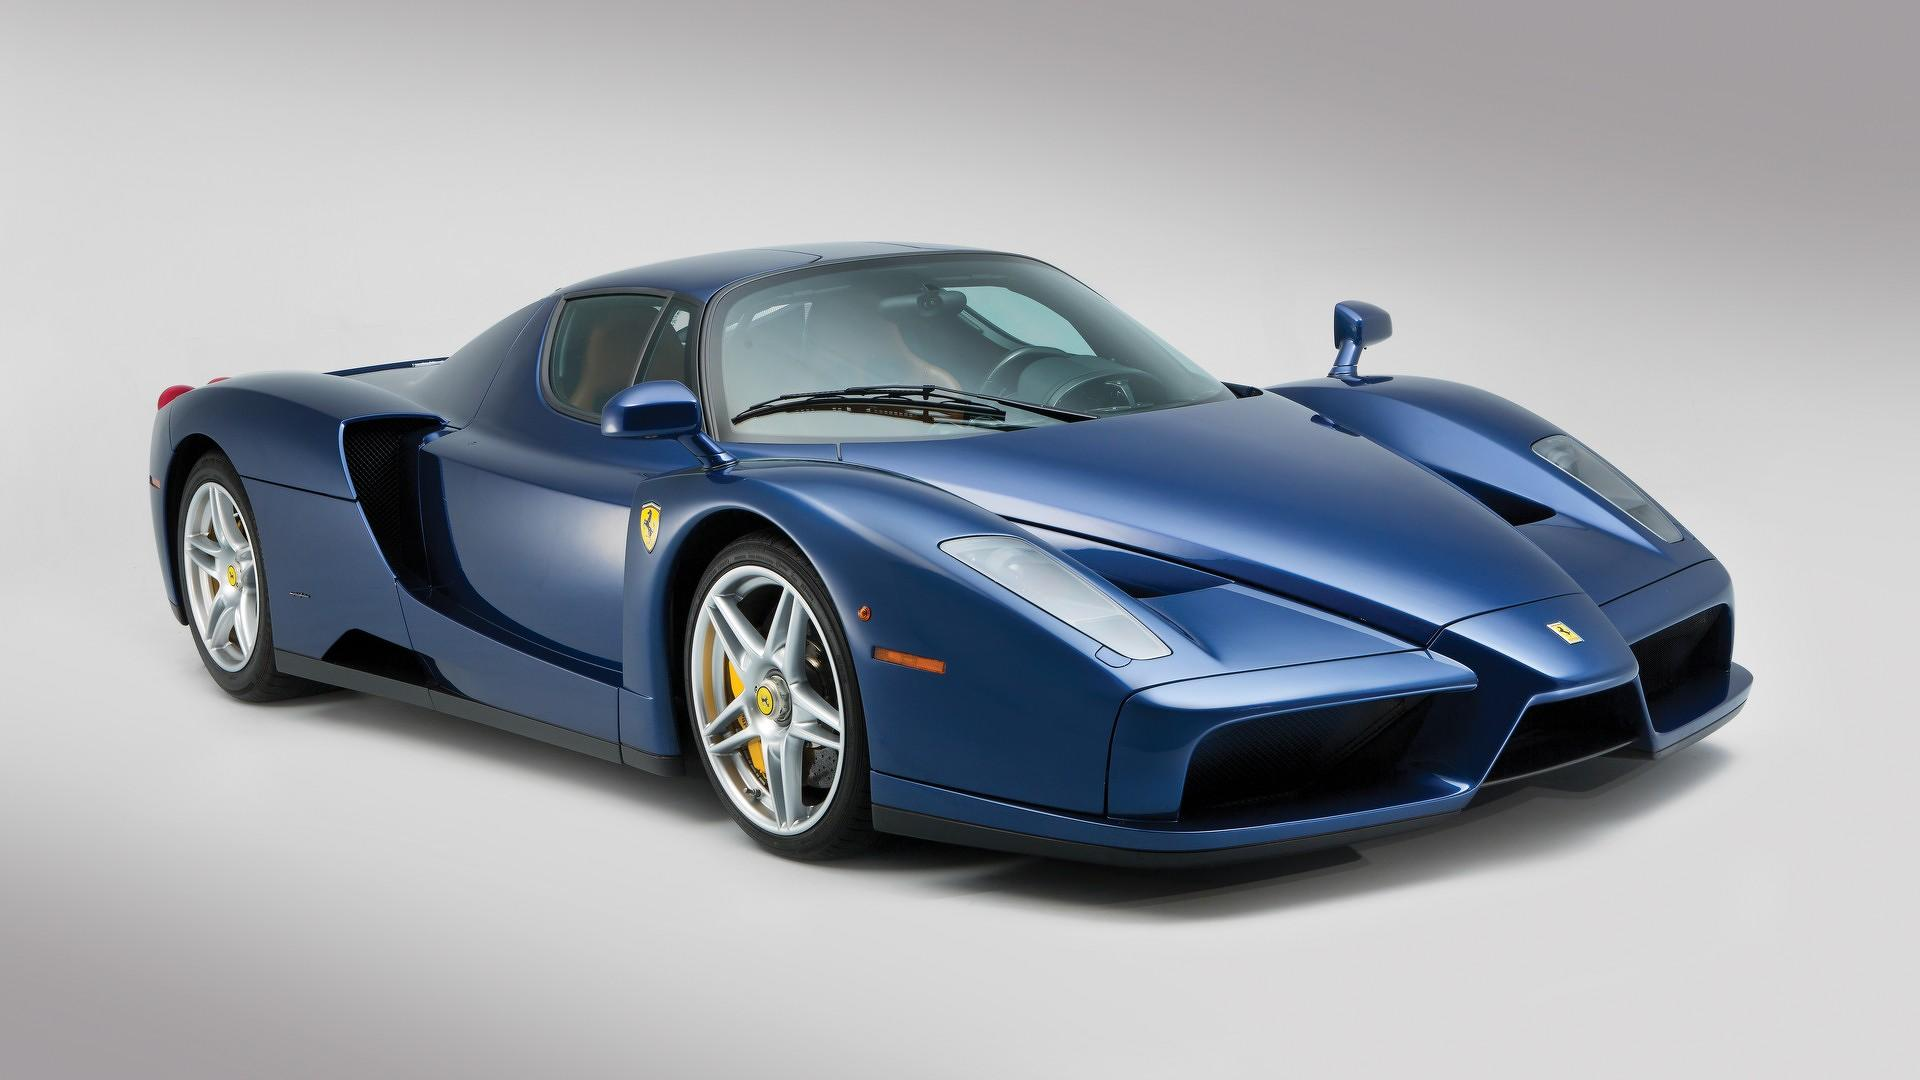 beautiful blue ferrari enzo sells for $2.4m at auction [update]